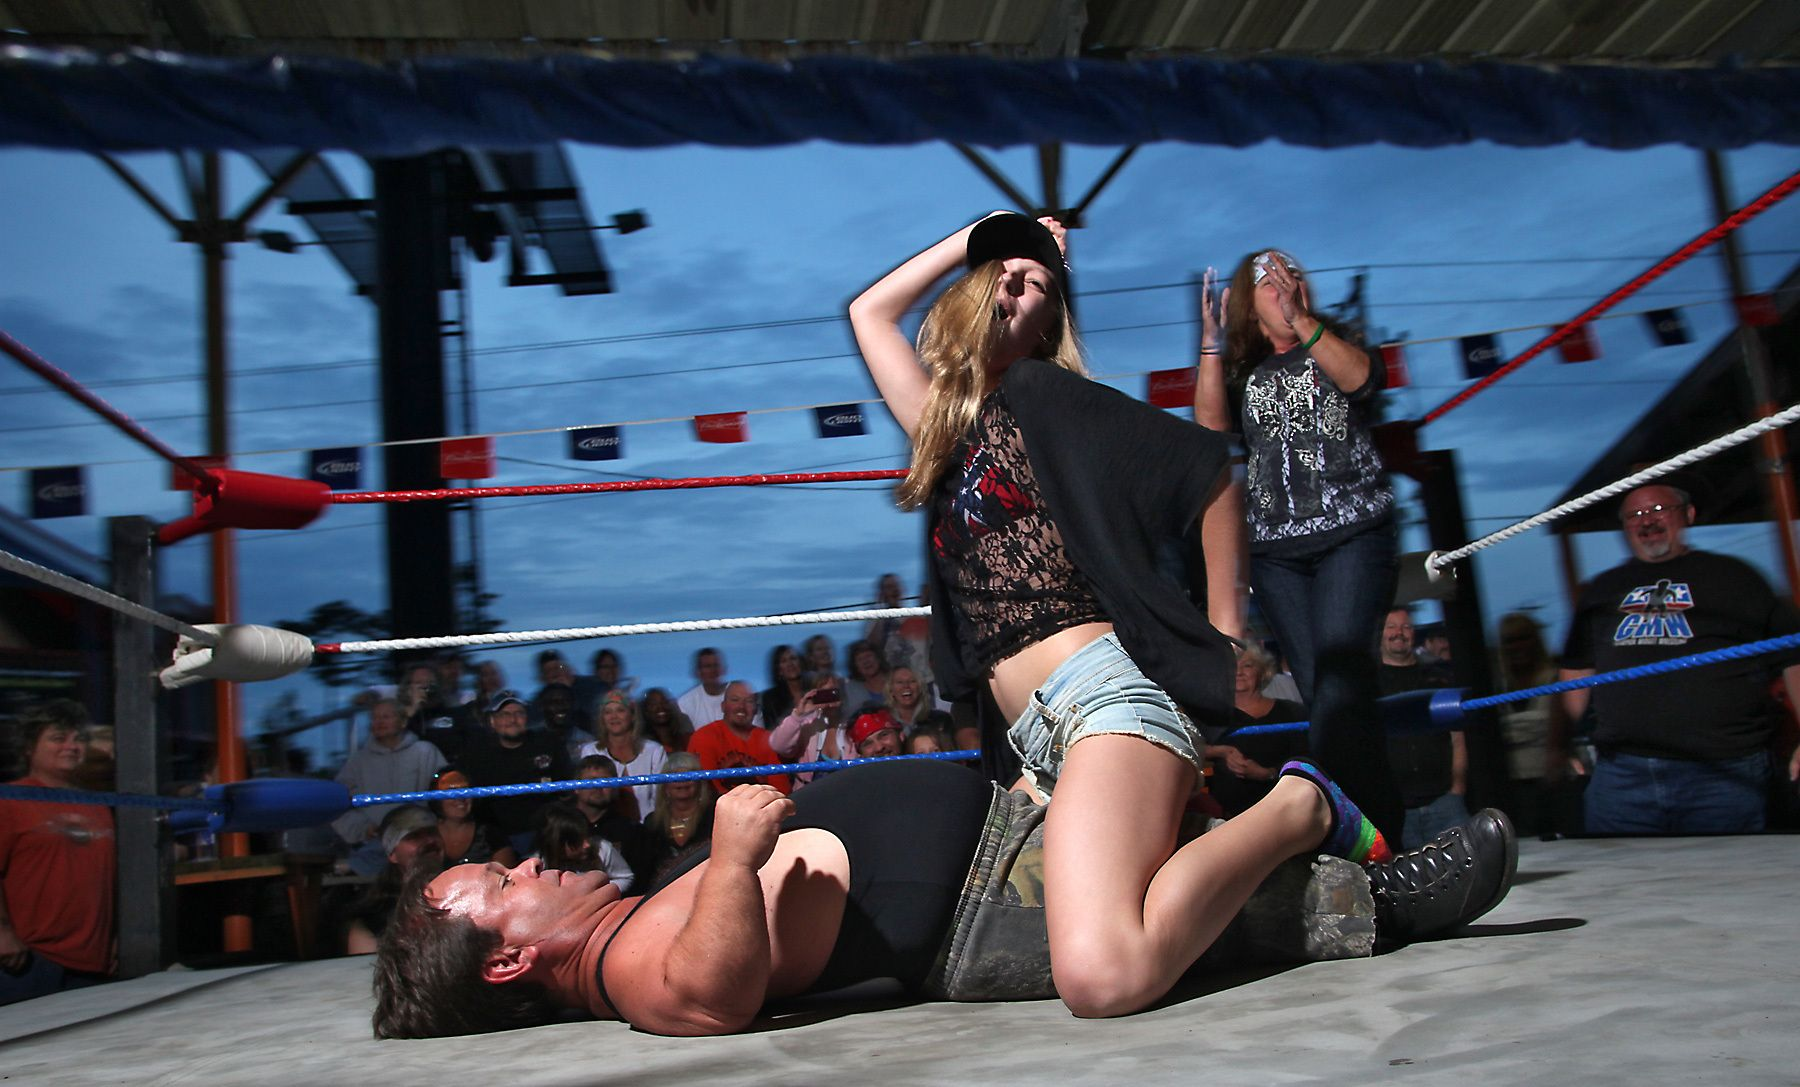 A woman competes in a competition with midget wrestler Joe Kidd  May 19, 2012 at the biker bar Suck Bang Blow in Murrells Inlet, S.C.  The midget troupe of wrestlers performed nightly during the annual Harley-Davidson Motorcycle Spring Rally around Myrtle Beach, SC. Several motorcycle rallies are annual events in and around the southern resort community of Myrtle Beach. Later this week events starts for the Atlantic Beach Bike Fest in nearby Atlantic Beach.  Picture taken May 19, 2012.  REUTERS/Randall Hill